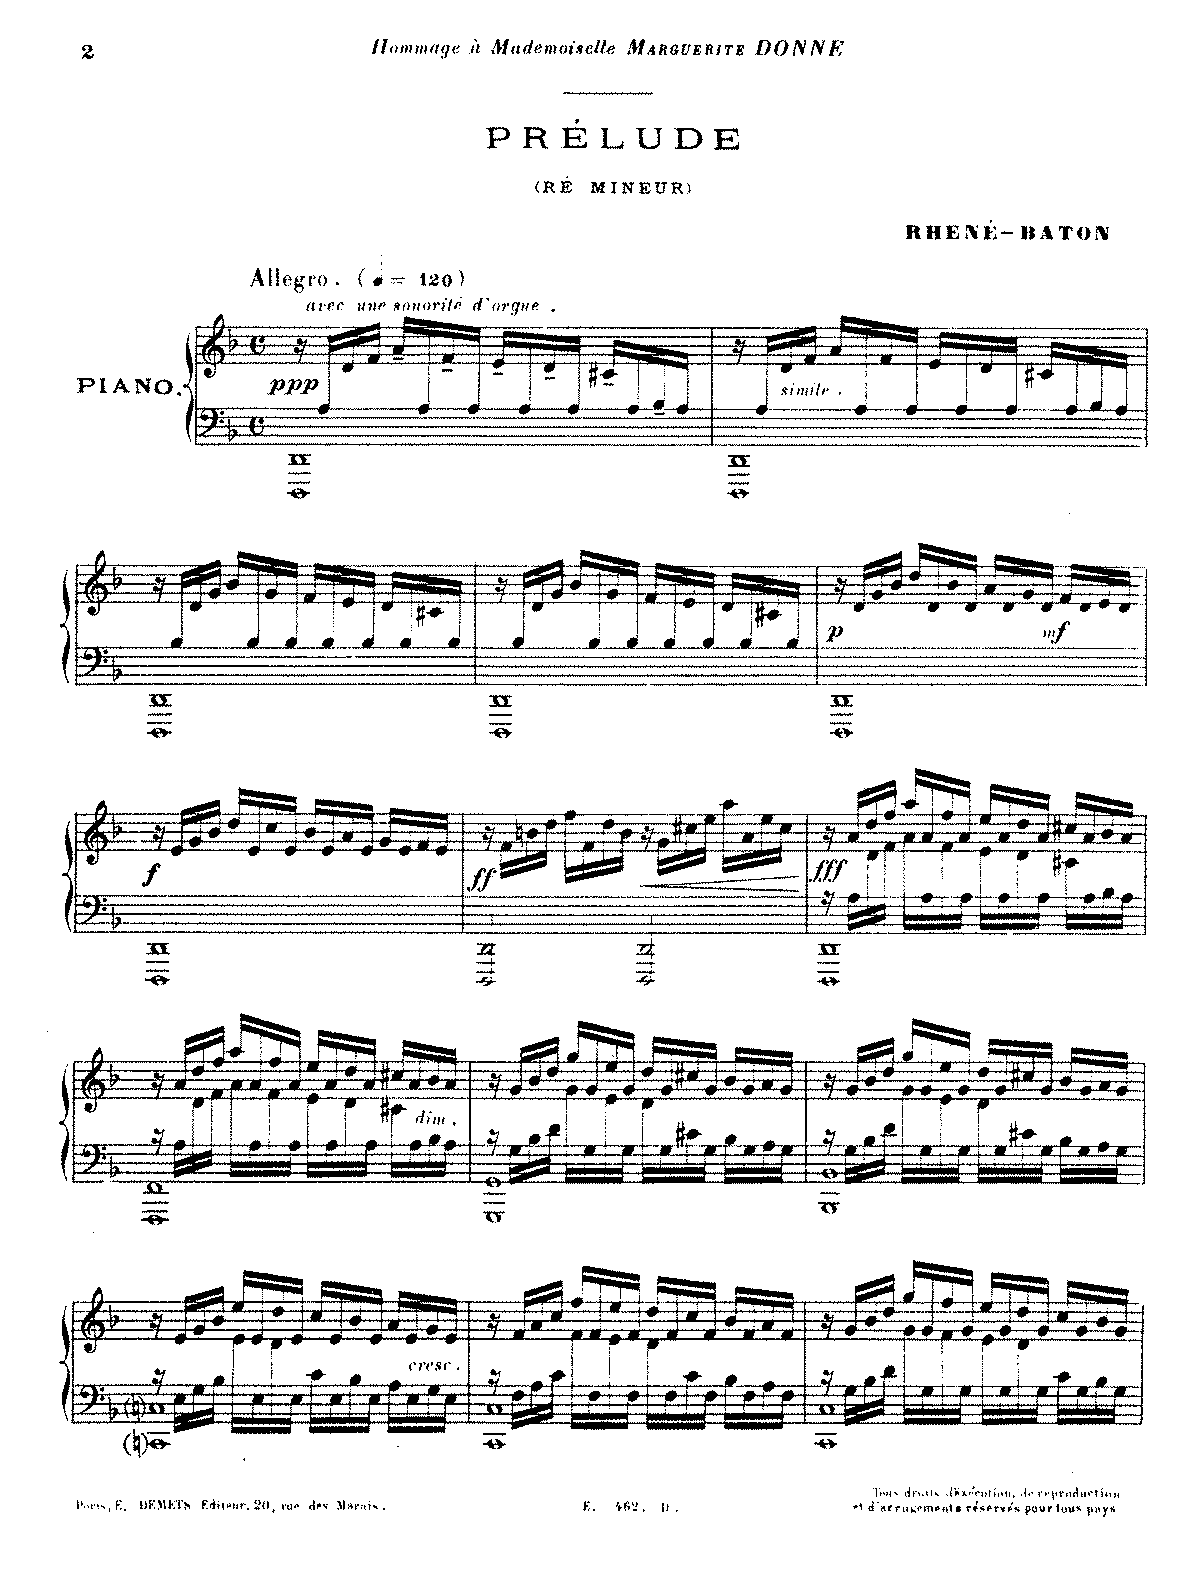 PMLP67046-Rhené-Baton - Prélude in d minor (piano).pdf